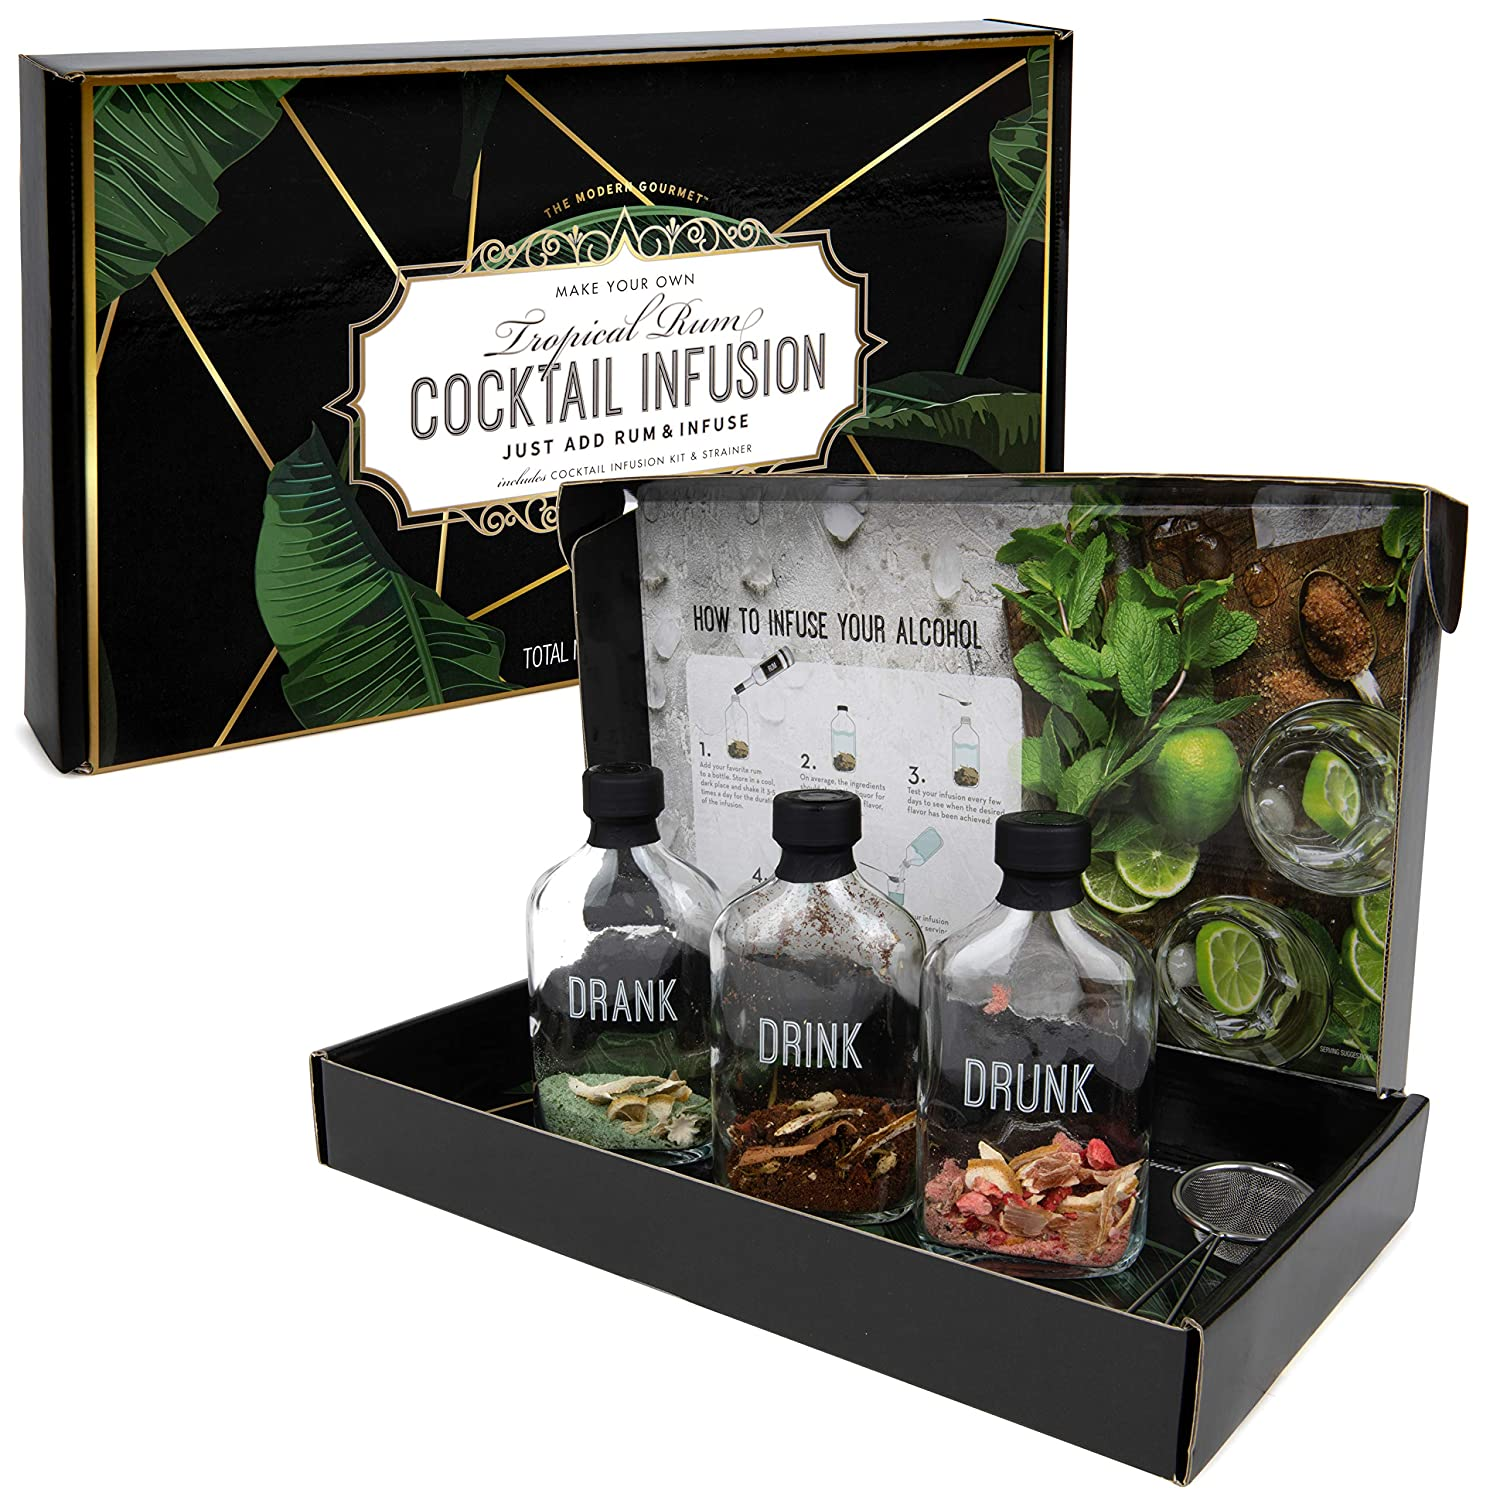 Thoughtfully Gifts, Rum Cocktail Infusion Gift Set, Flavors Include Mojito, Caribbean Twist and Strawberry Daiquiri, Pack of 3 (Contains NO Alcohol)